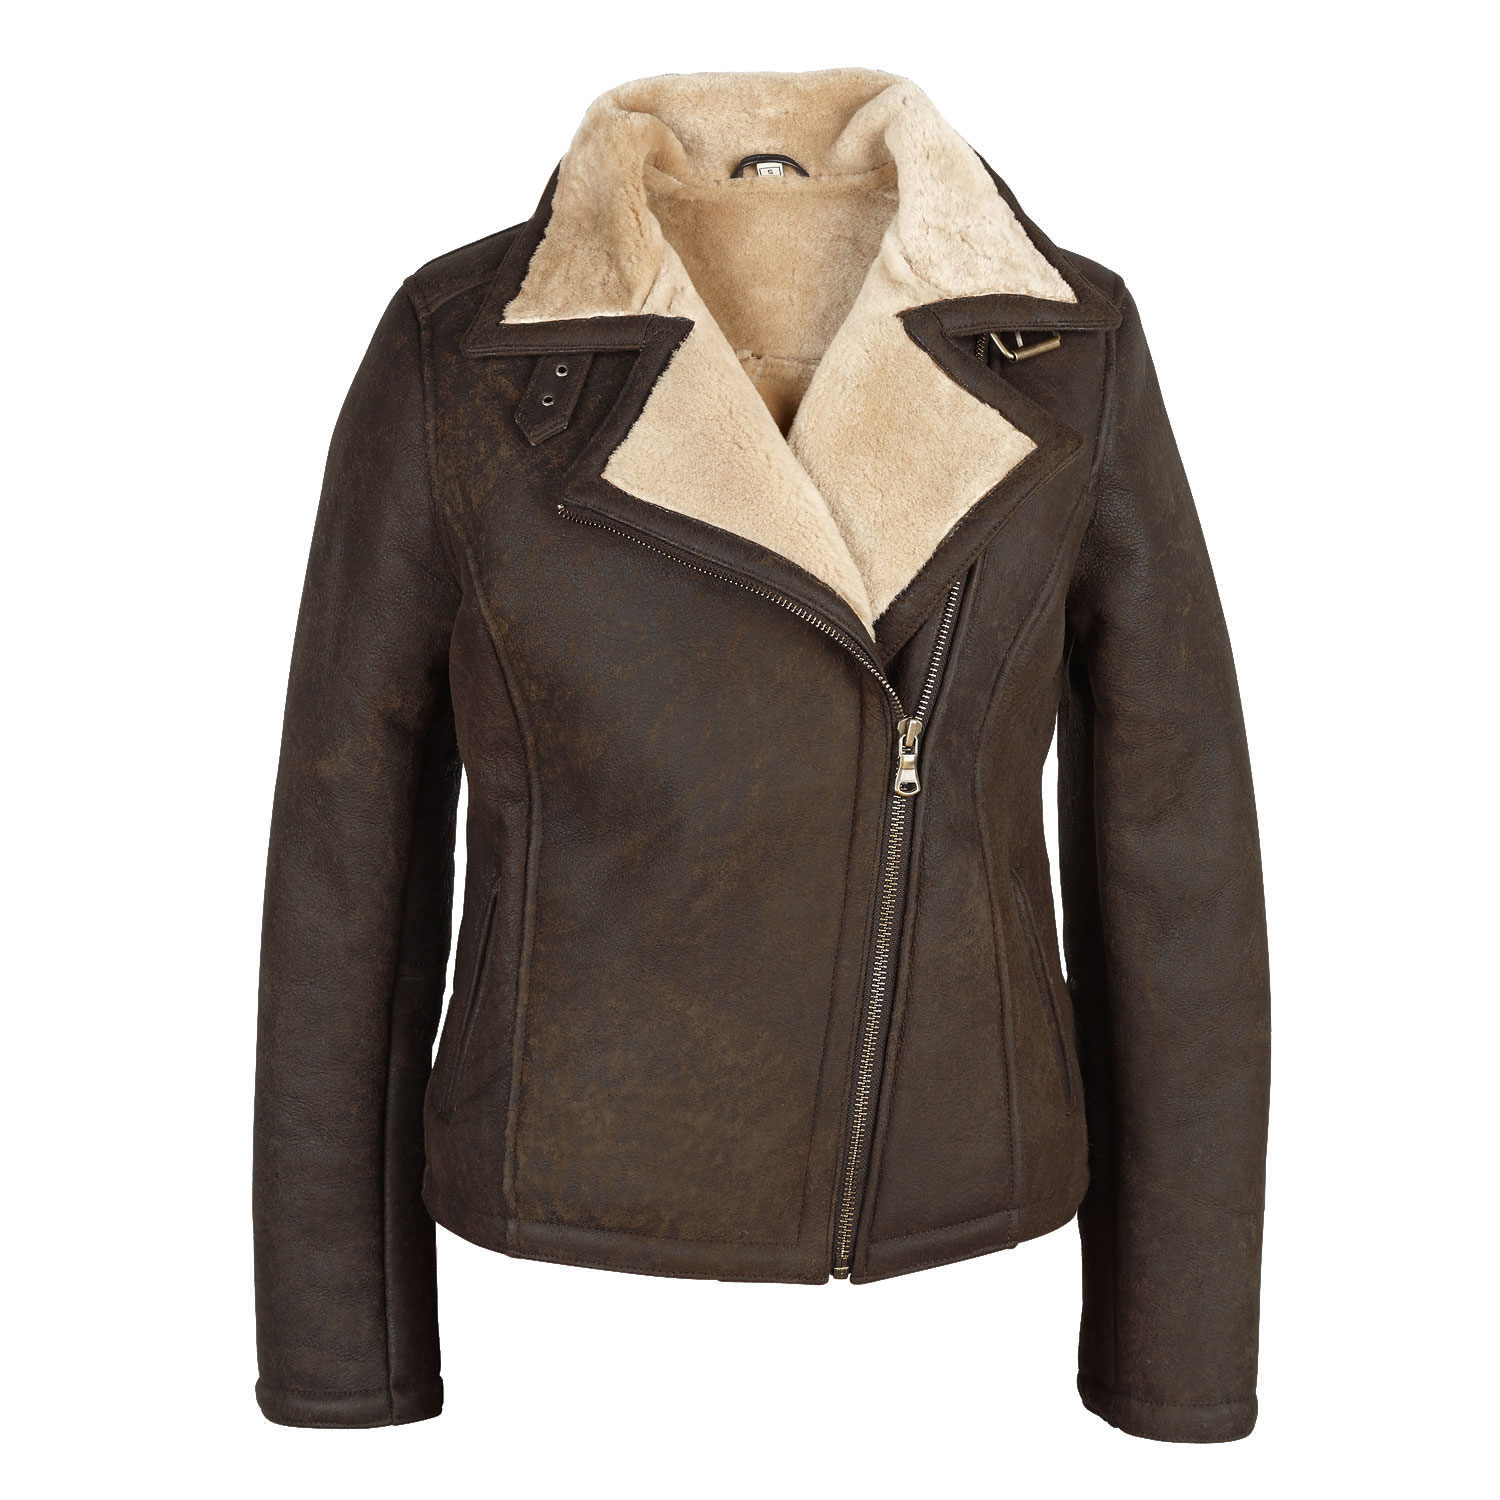 Women's Sheepskin Coats & Jackets